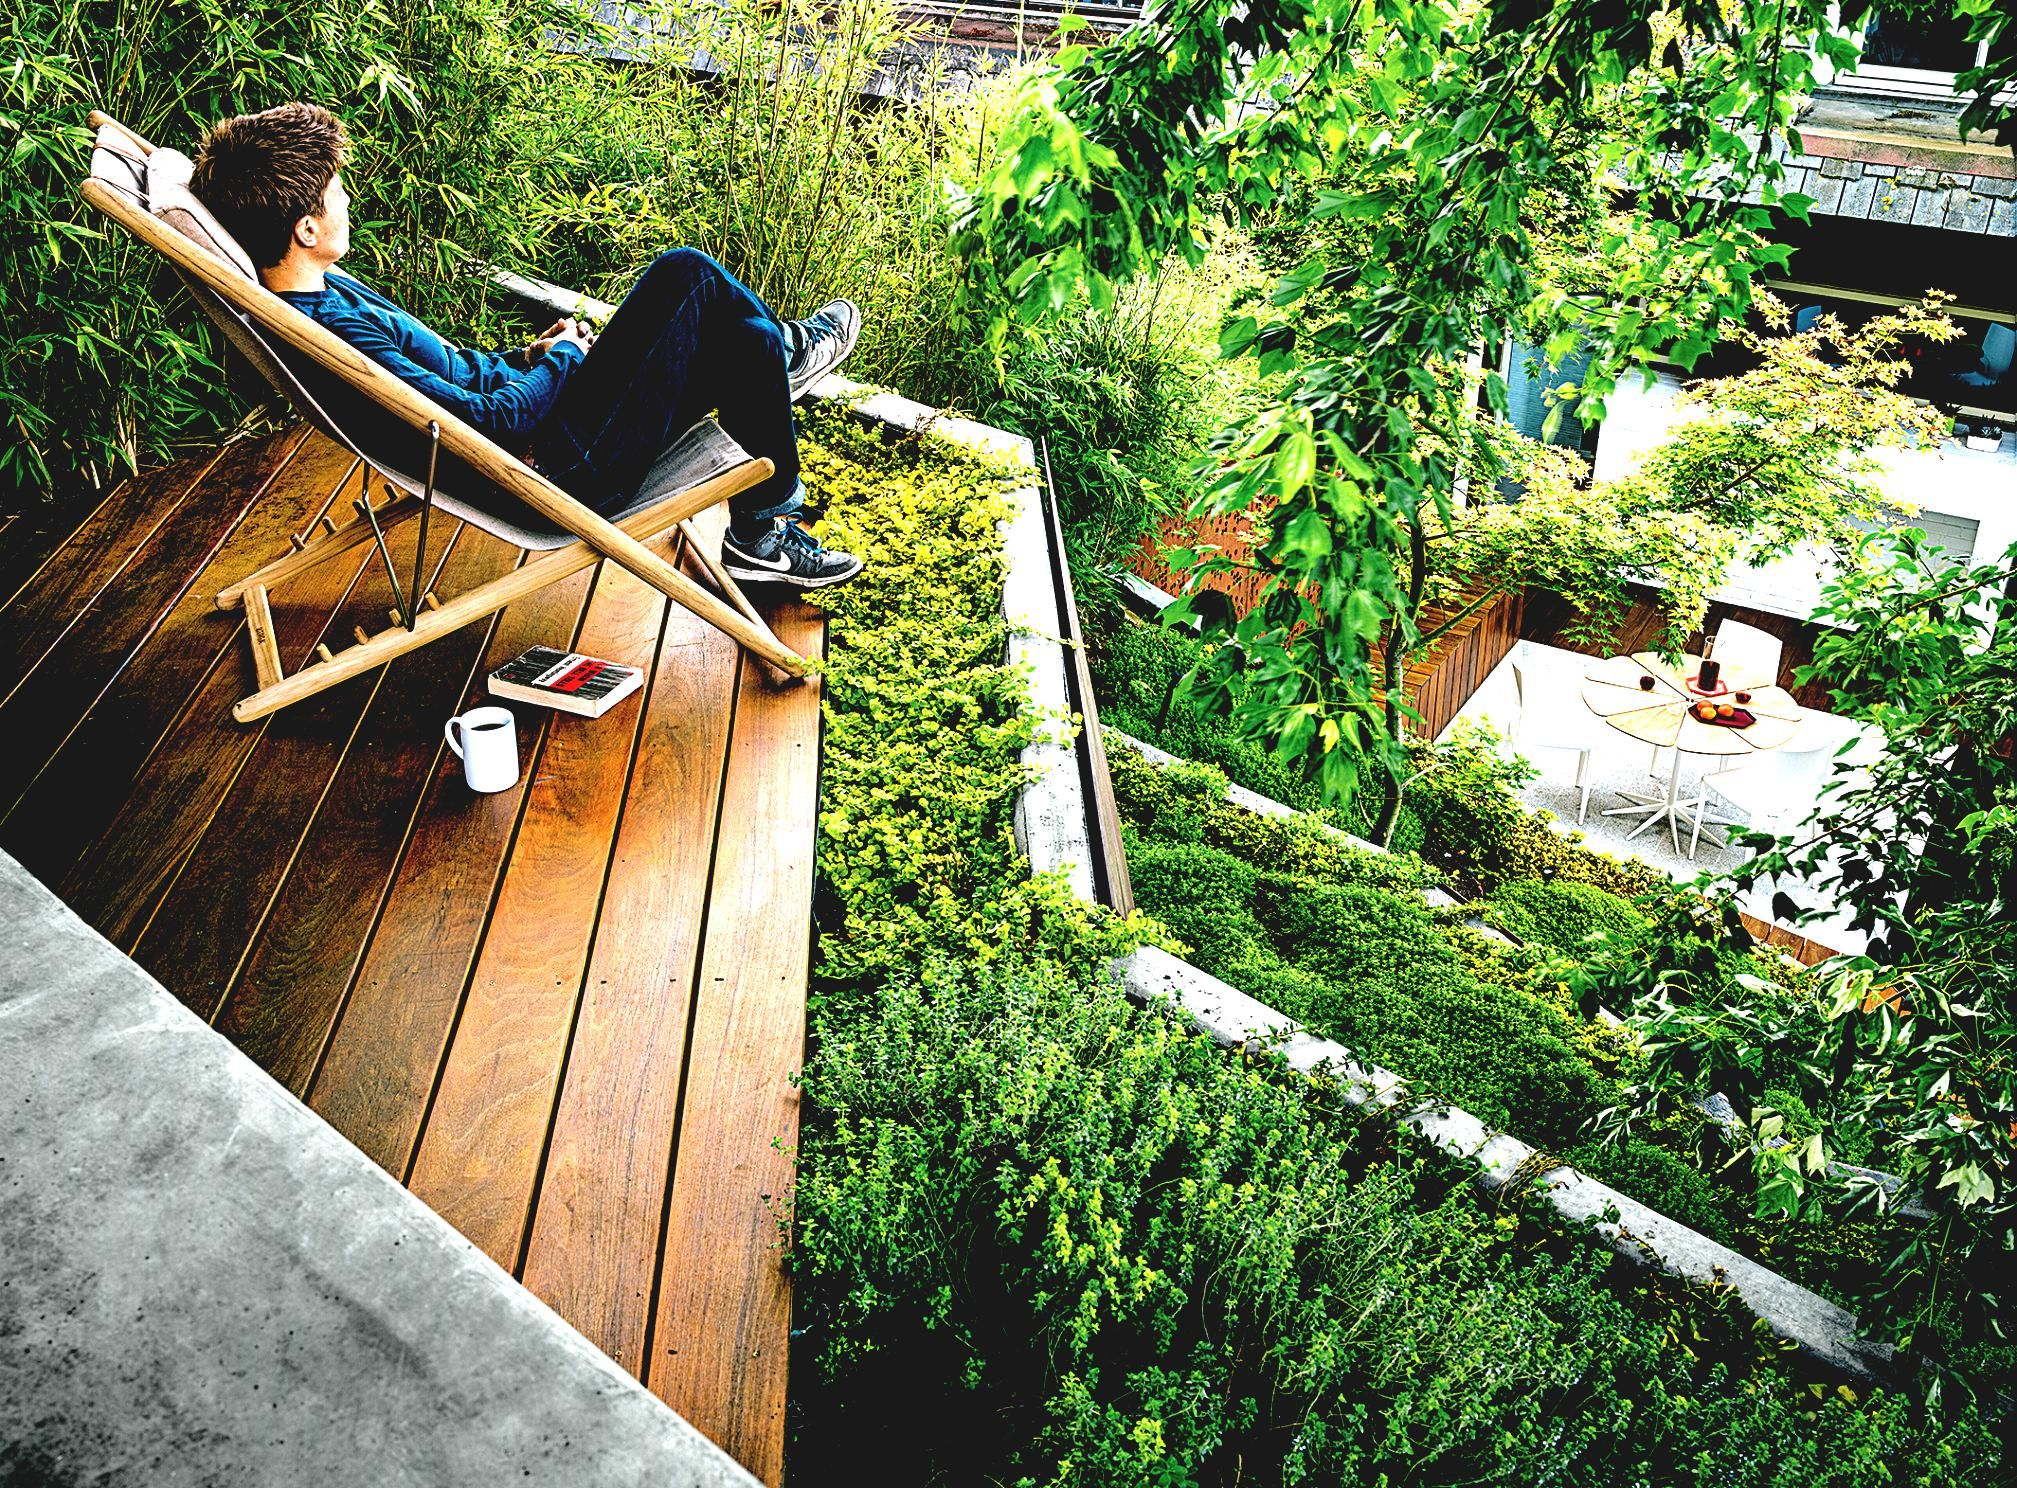 Charming Urban Gardens Dwell Landscaping Ideas On A Steep Hill